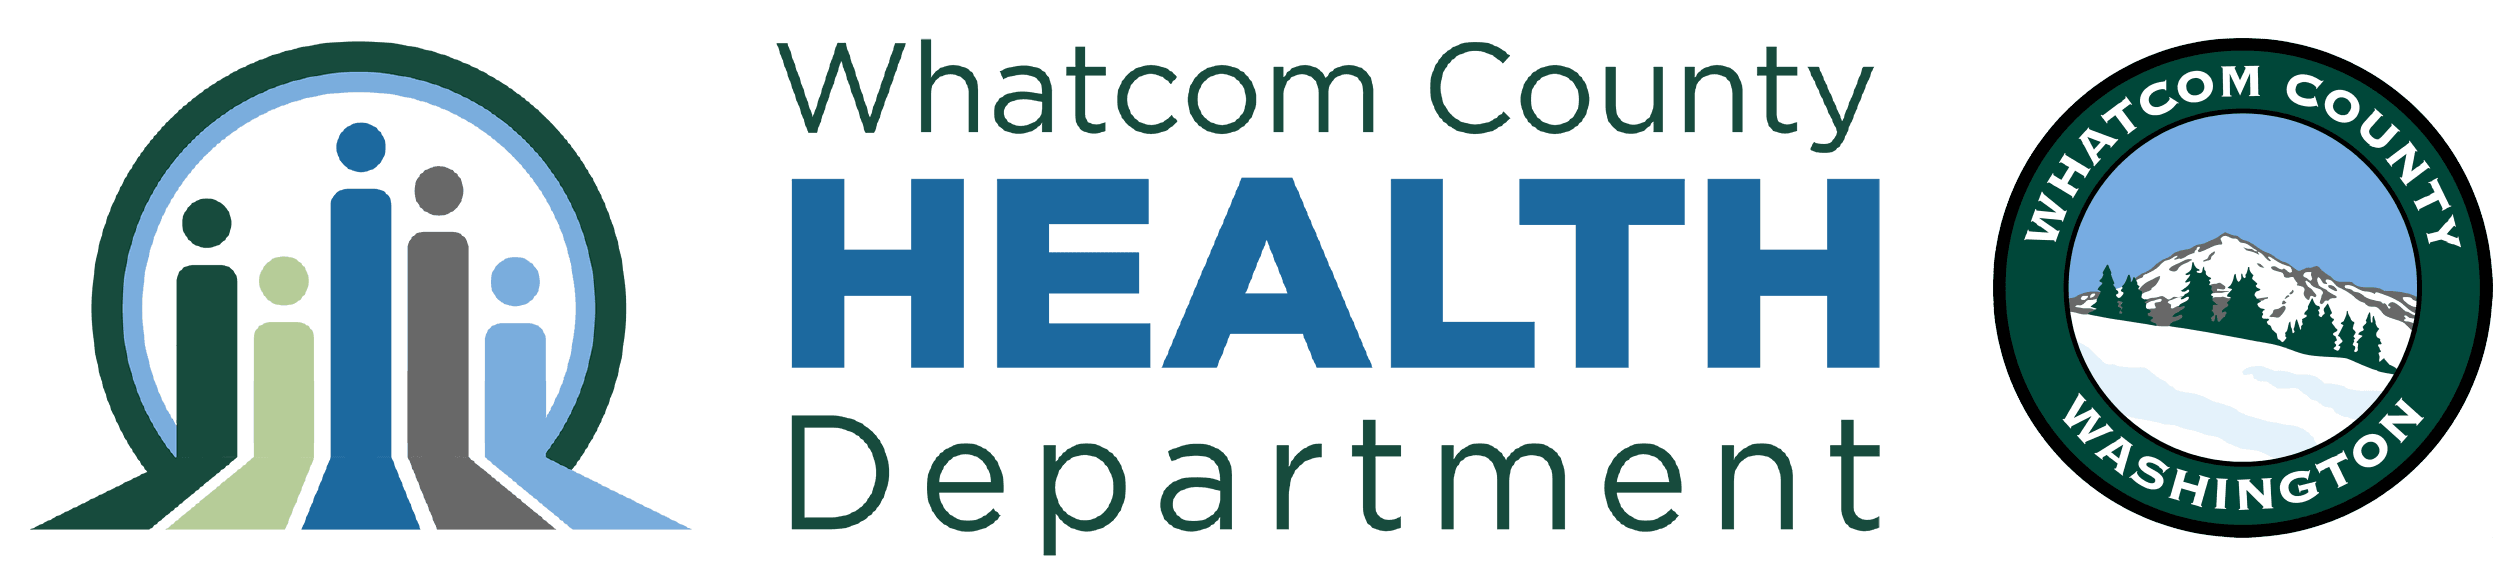 Survey launched to collect COVID-19 experiences and social distancing practices in Whatcom